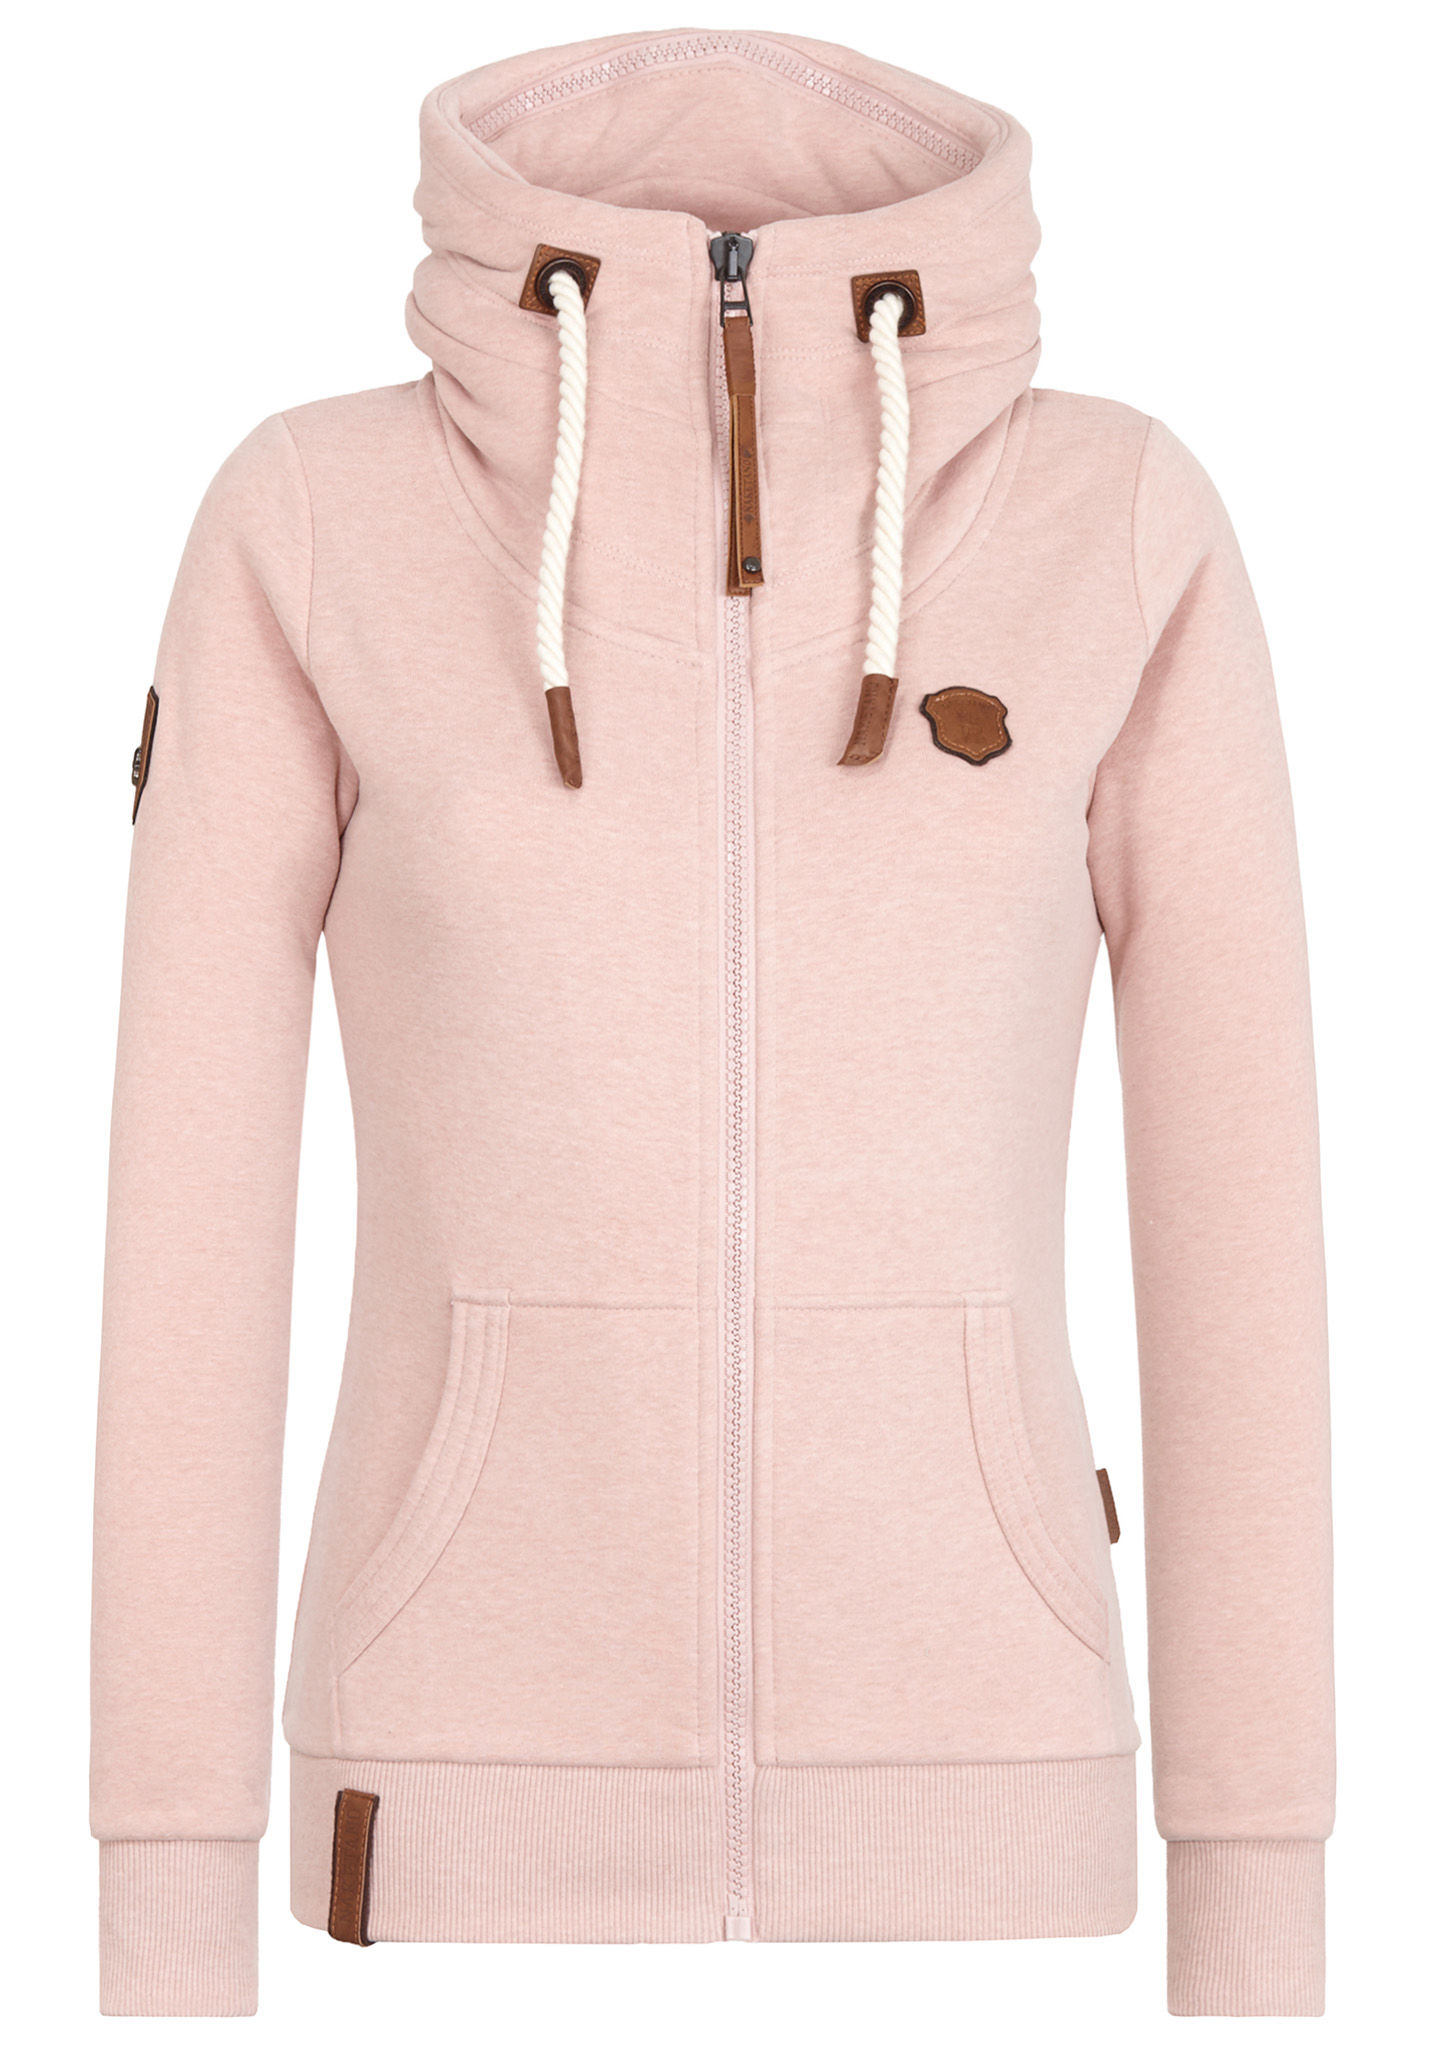 Naketano Monsterbumserin VII - Sweatjacke für Damen - Pink Naketano